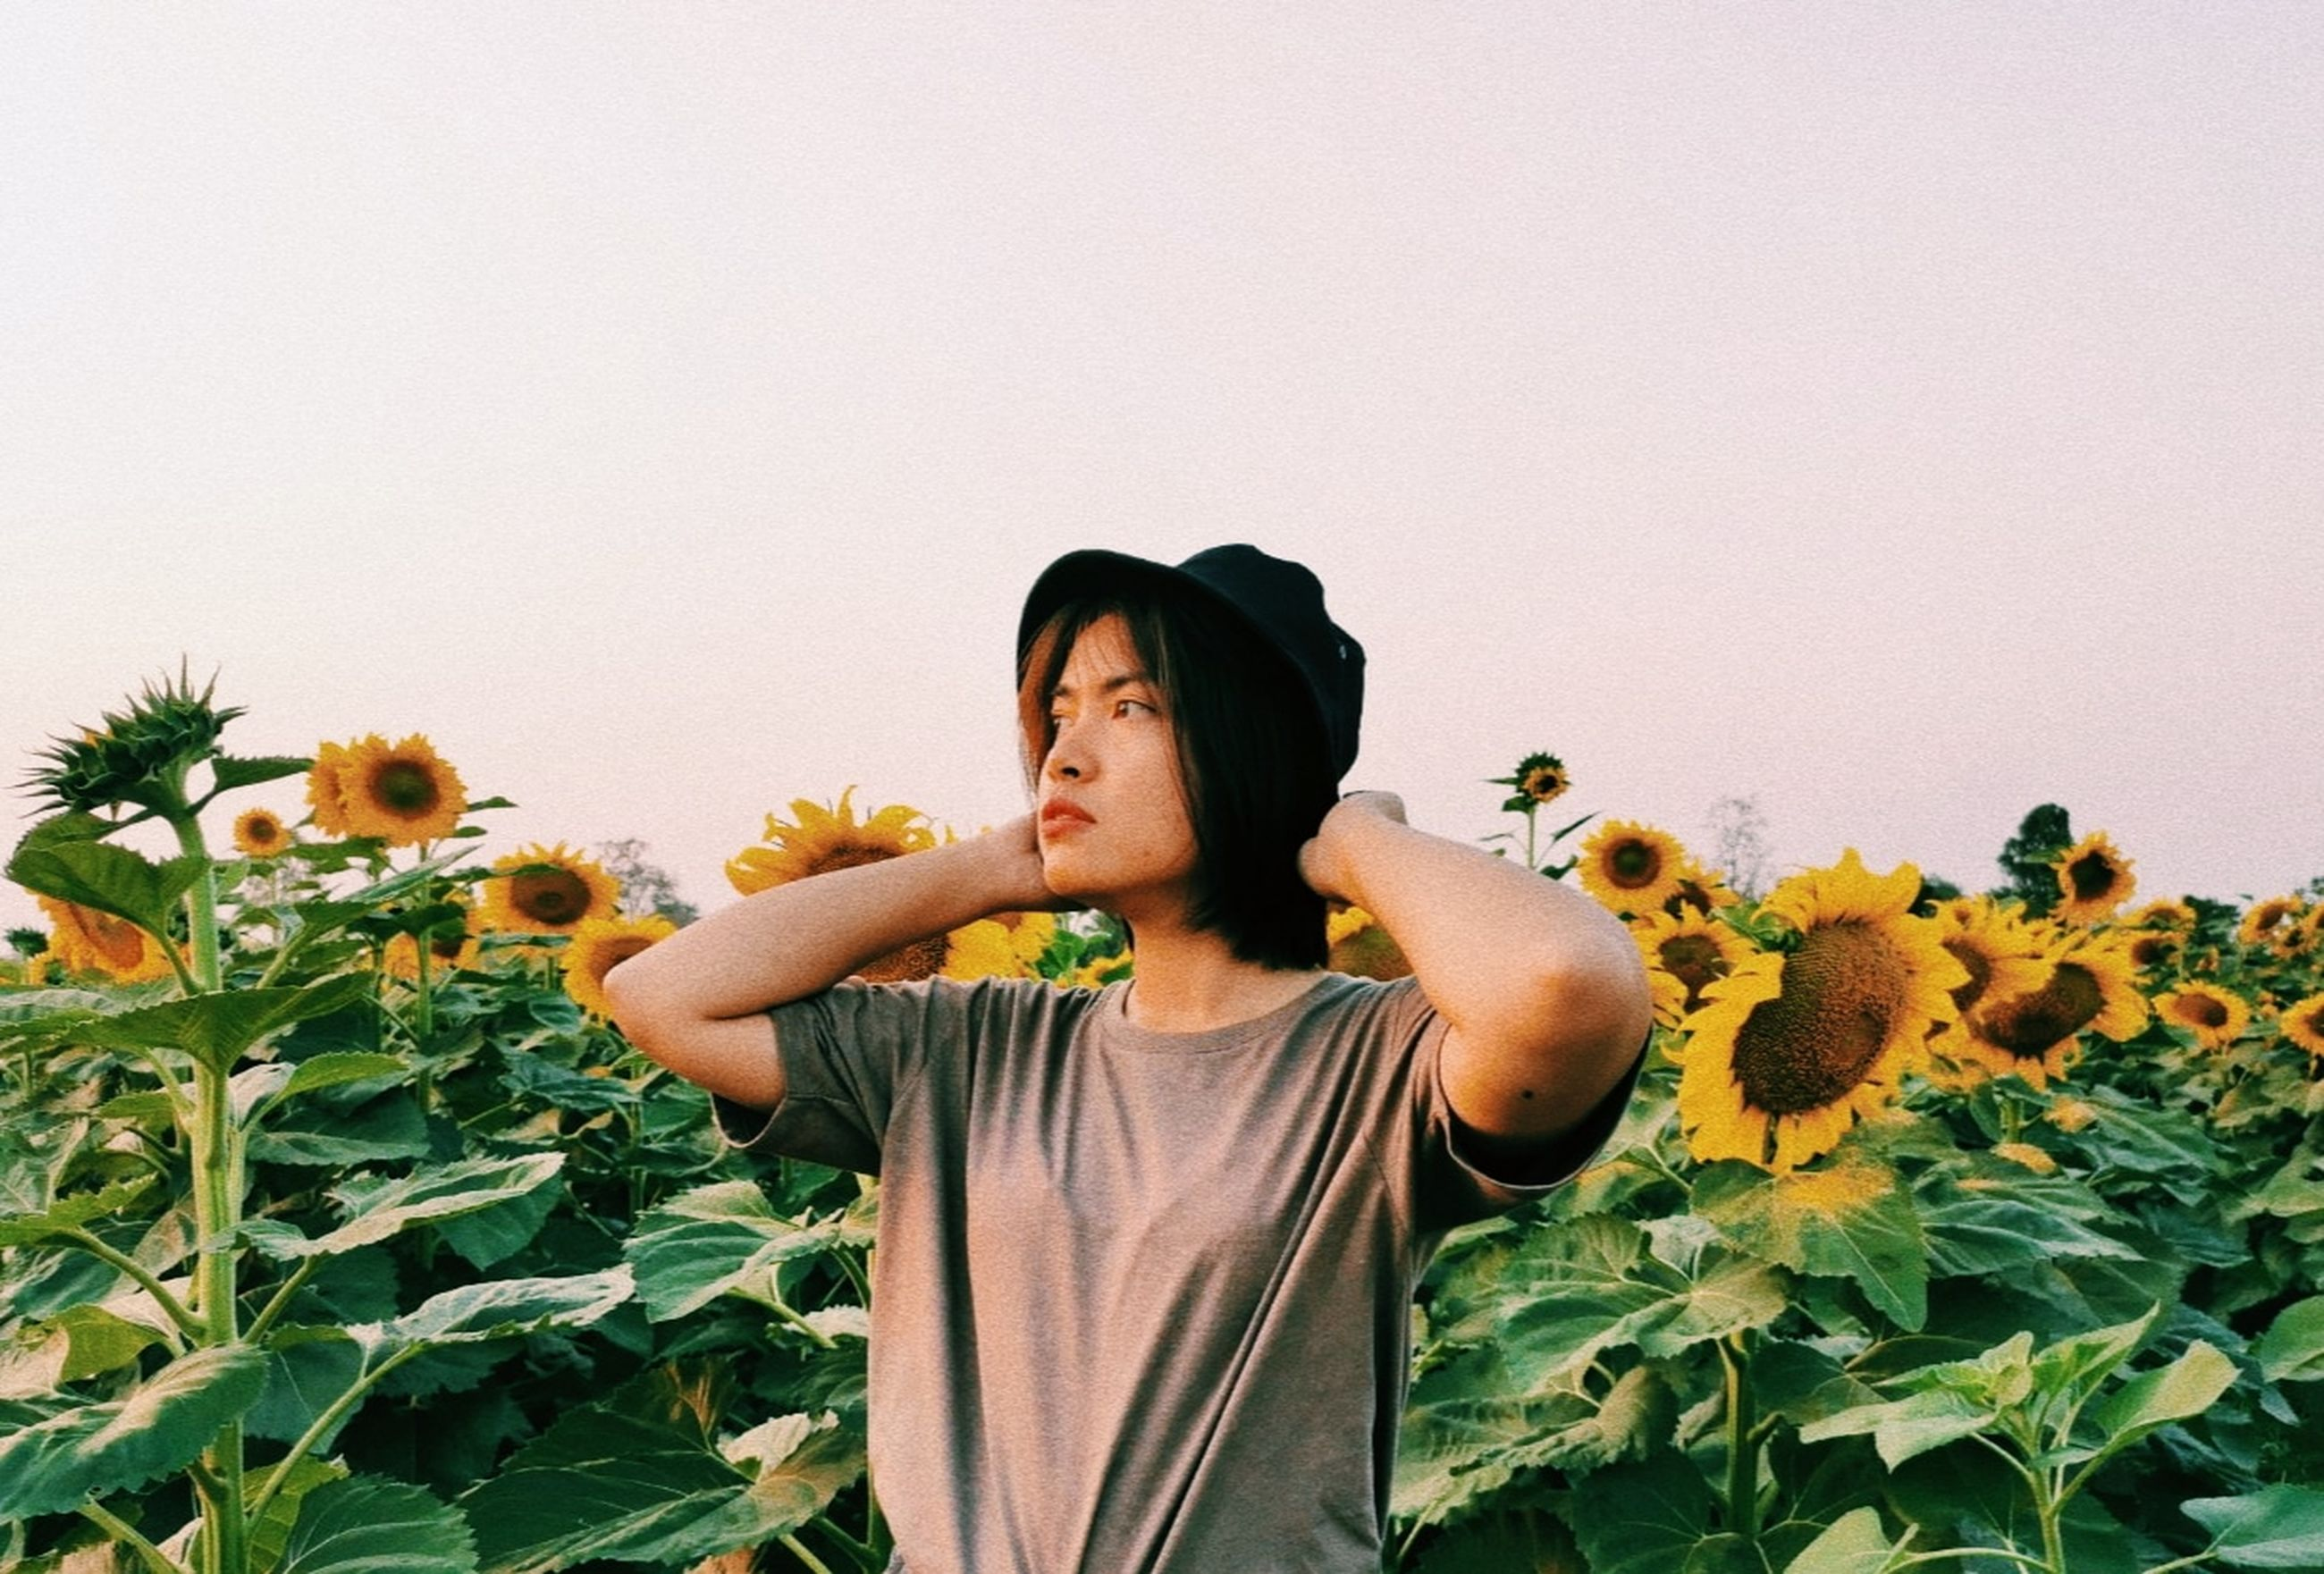 plant, one person, flowering plant, flower, growth, waist up, nature, lifestyles, yellow, real people, leisure activity, copy space, young adult, sky, front view, casual clothing, clear sky, leaf, beauty in nature, flower head, sunflower, outdoors, human arm, contemplation